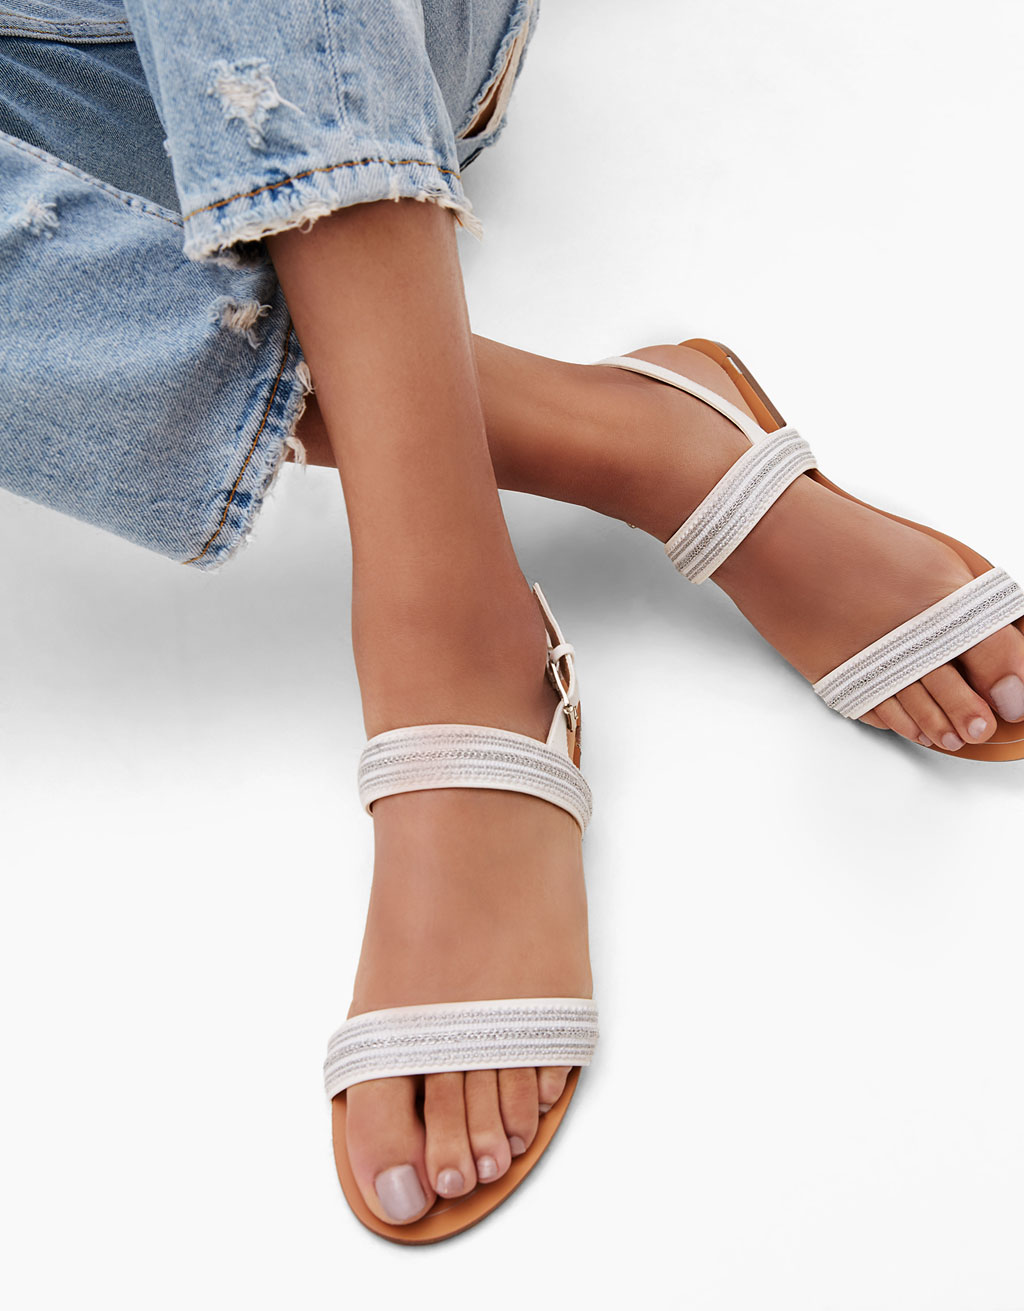 Slide sandals with chain link ankle strap